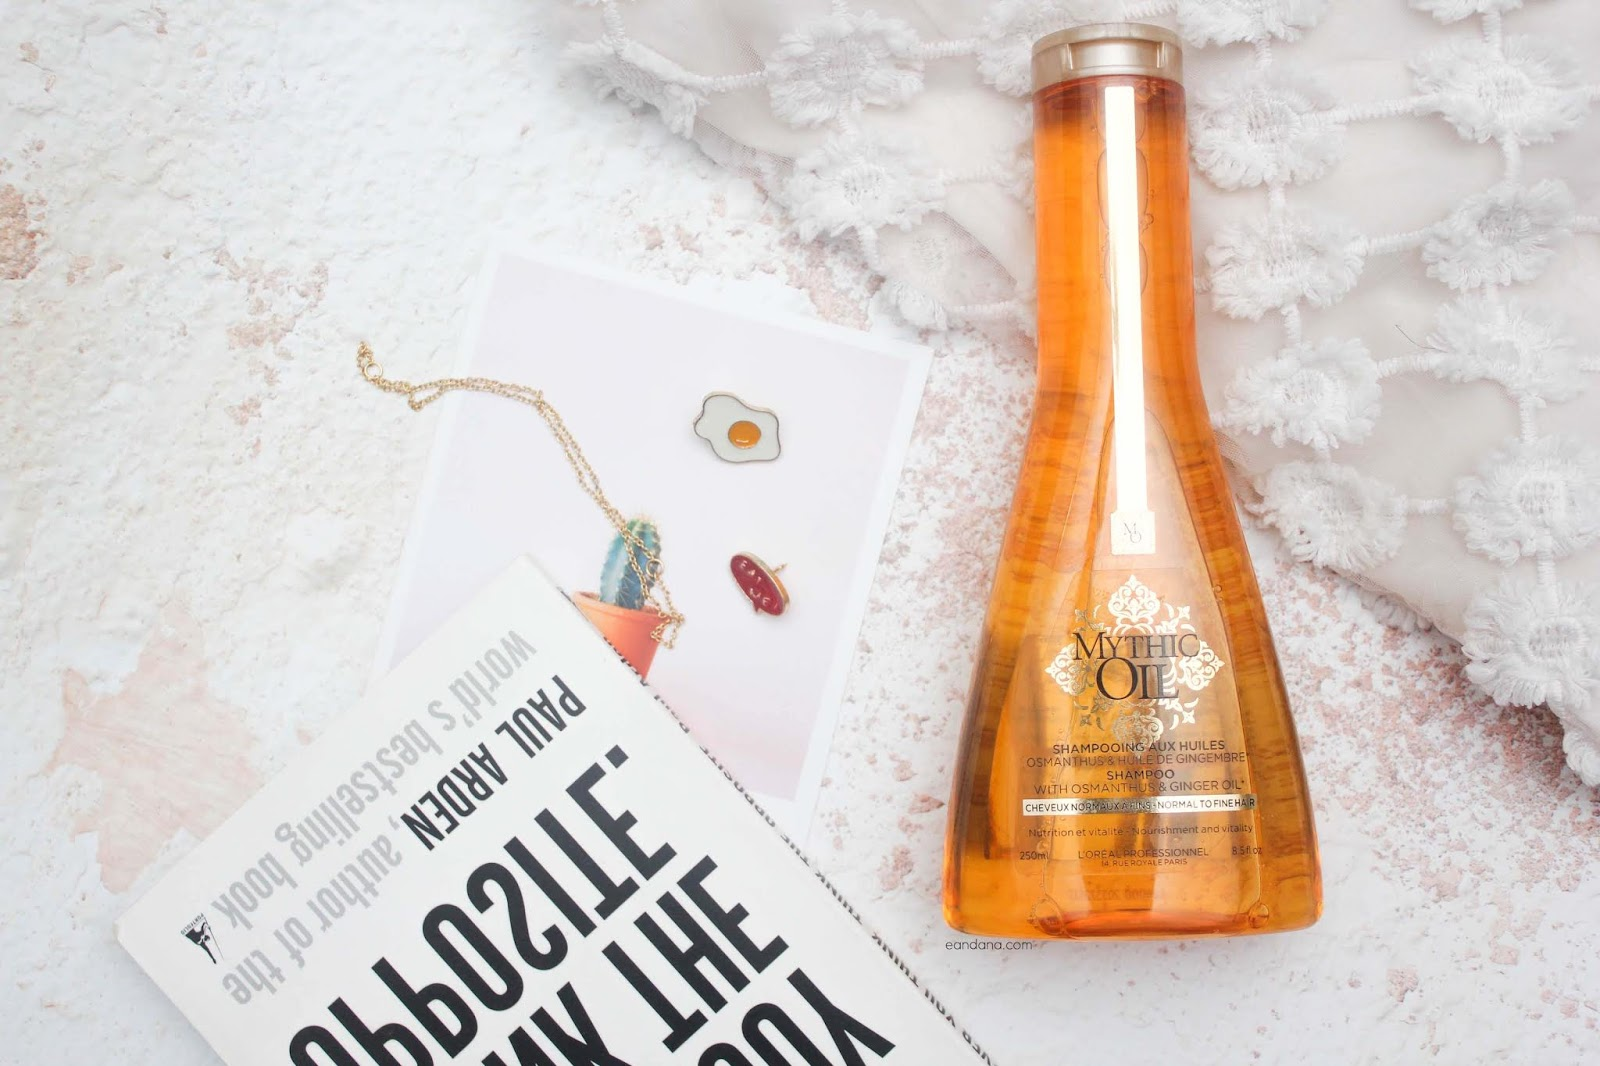 Loreal Mythic Oil Shampoo Review